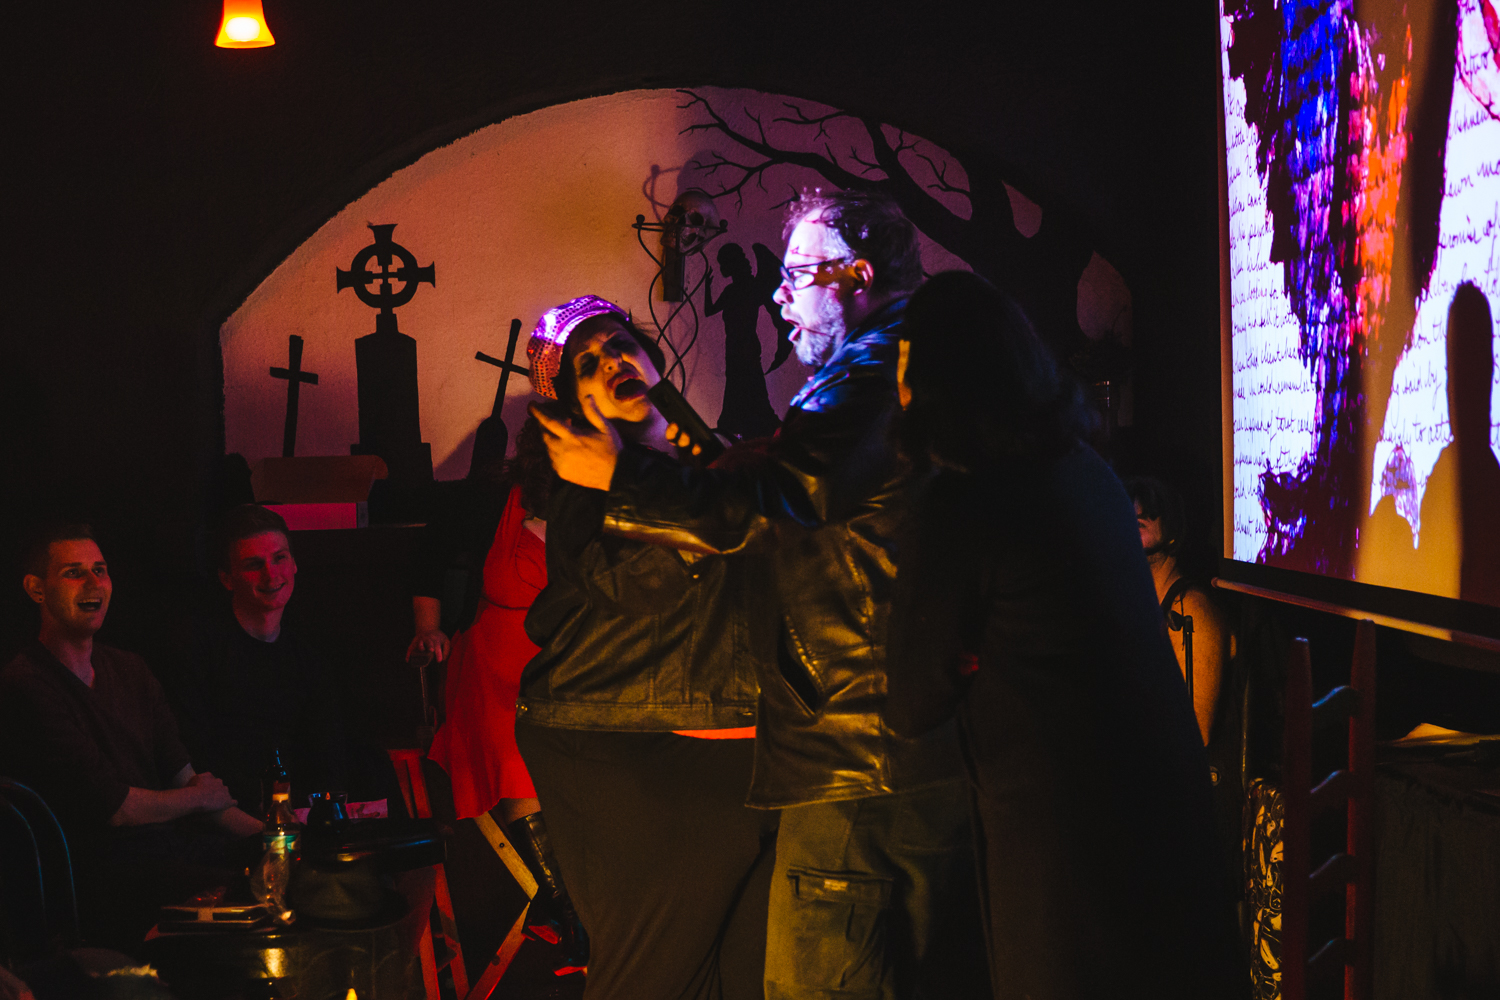 It's the Undead Cabaret! A Macabaret, if you will! Spooked in Seattle threw it's inaugural 'My Bloody Valentine' show this past weekend (Feb. 10, 2018). Performers use song, dance and sketch to explore Love In Seattle - albeit in a slightly cynical way. Afterwards, a Tarot Card reader was on hand to deliver insights into your heart's deepest darkest desires. If you missed this one, there will be one Wednesday, February 14th at 7:30 p.m. Tickets are $15, more info on spookedinseattle.com. (Image: Sunita Martini / Seattle Refined)